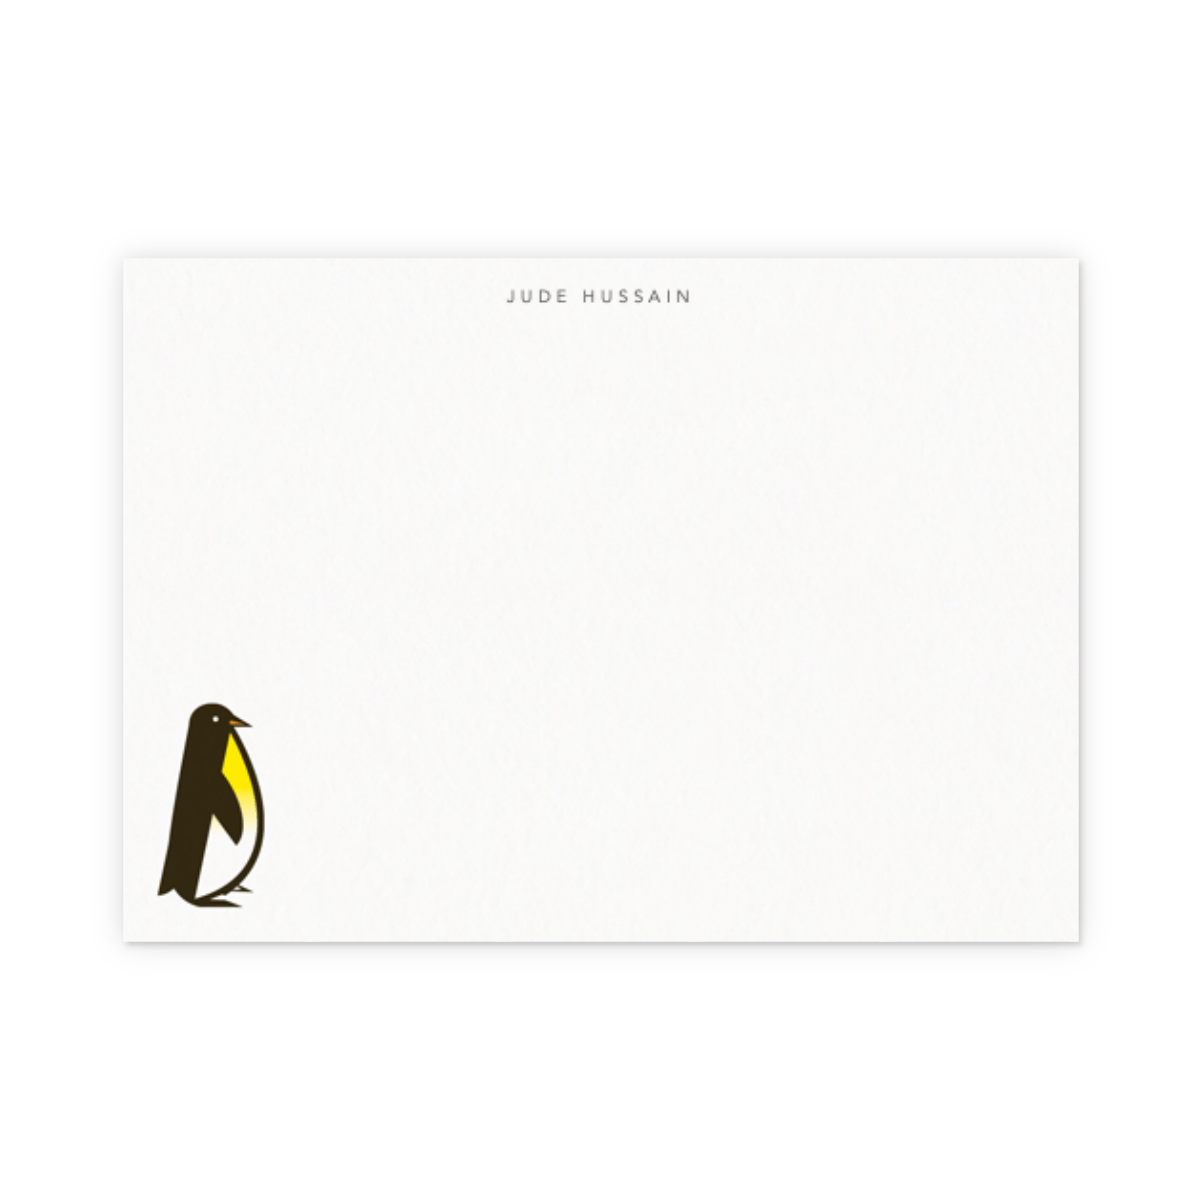 Https%3a%2f%2fwww.papier.com%2fproduct image%2f5423%2f10%2fpenguin 1410 front 1551278976.png?ixlib=rb 1.1